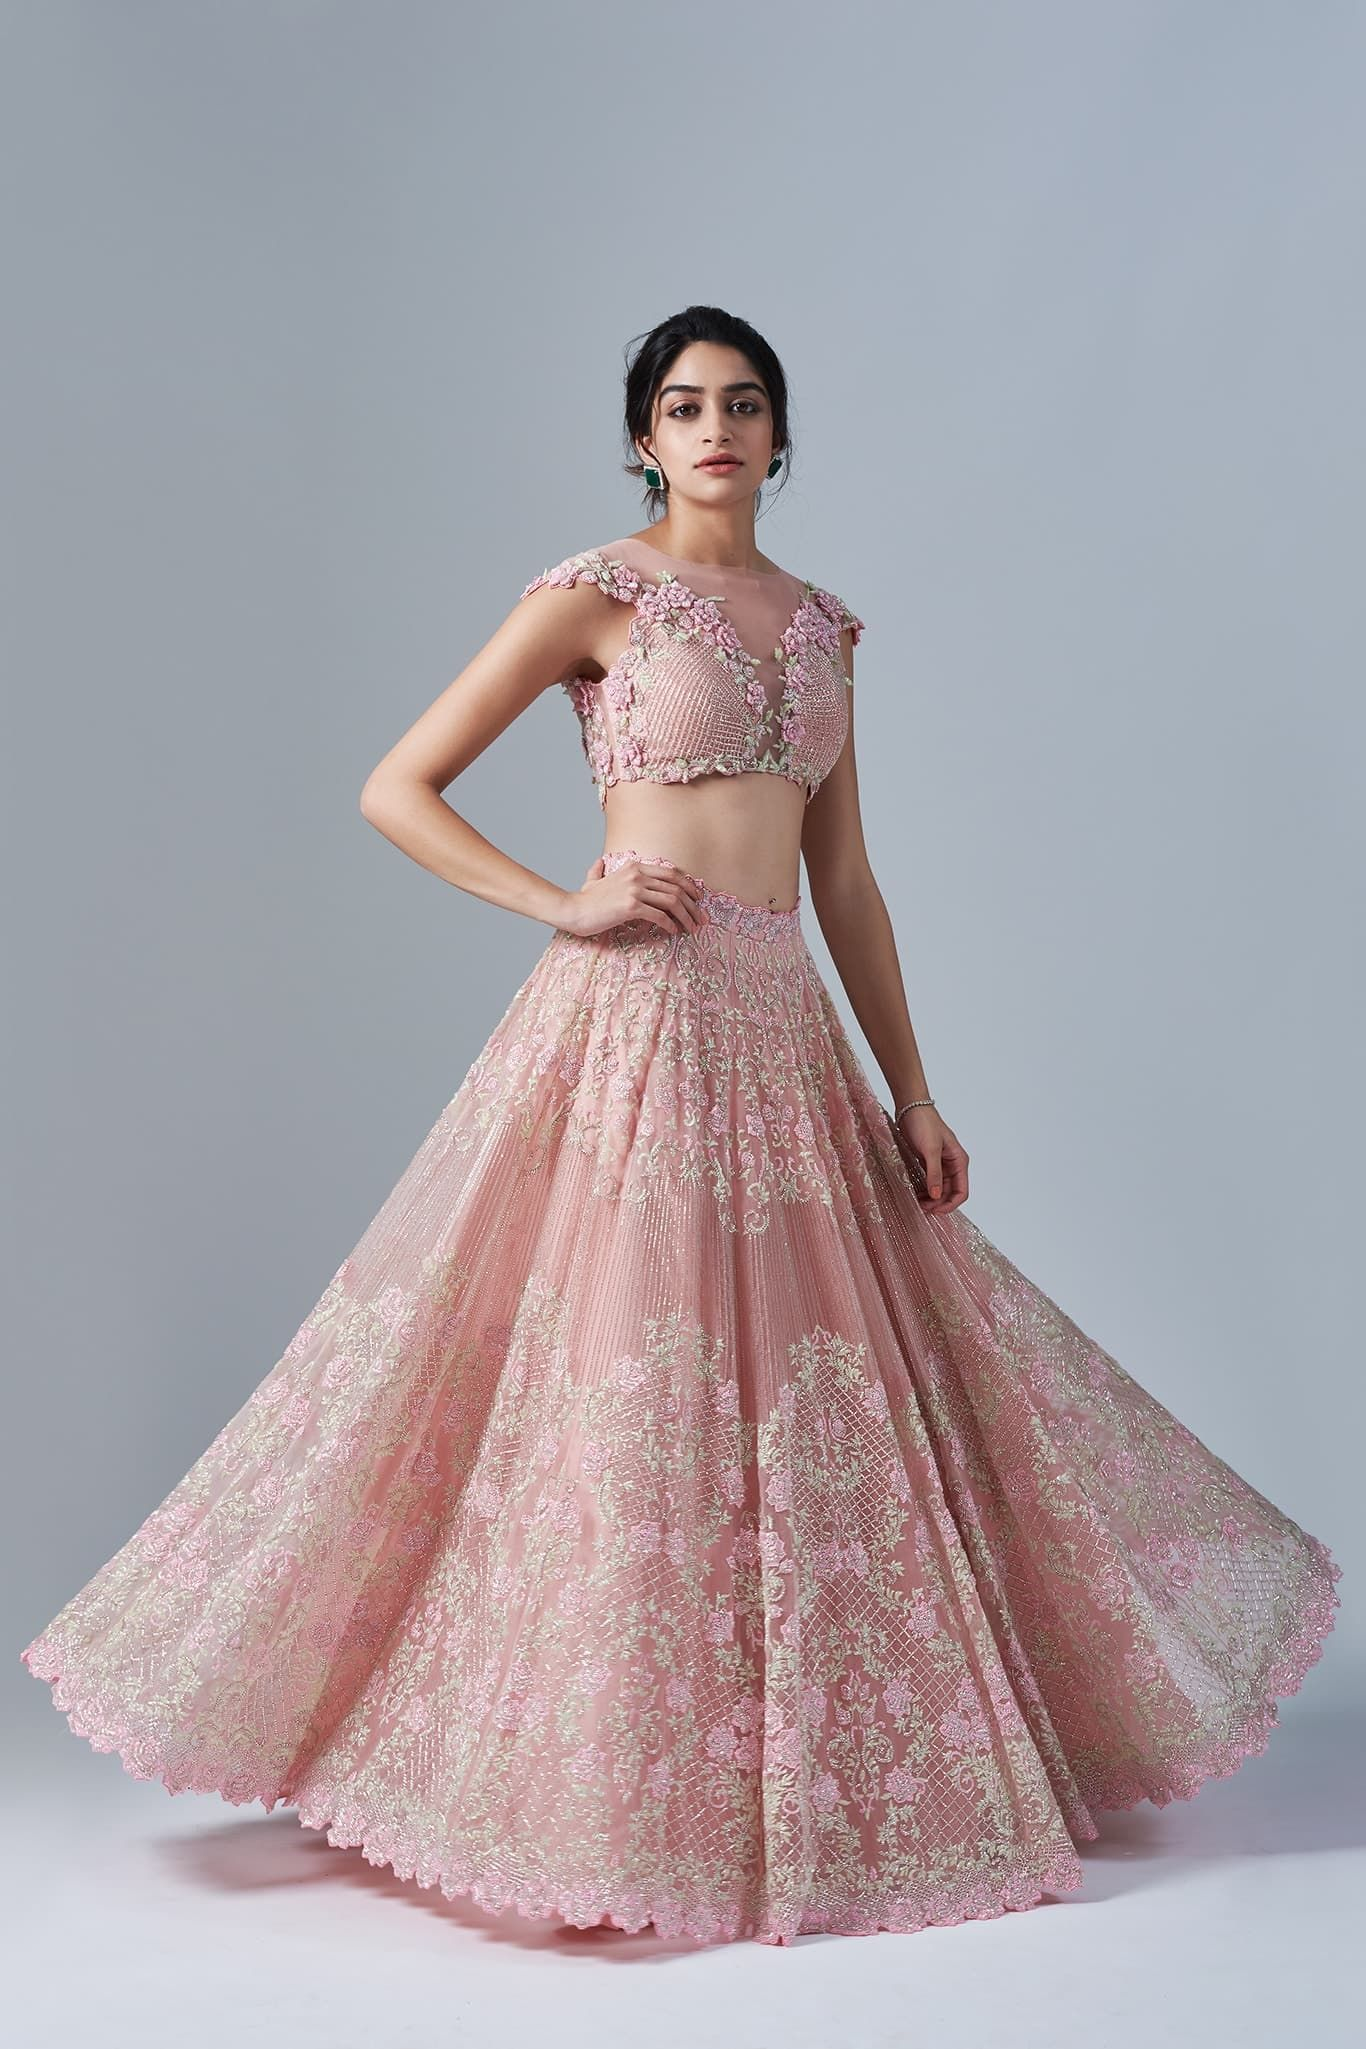 b111975beaaa1 Koecsh Festive 2017 Rosaria: Rose Pink 3D floral blouse and lehenga with  hints of powder green, embellished with rhinestones.